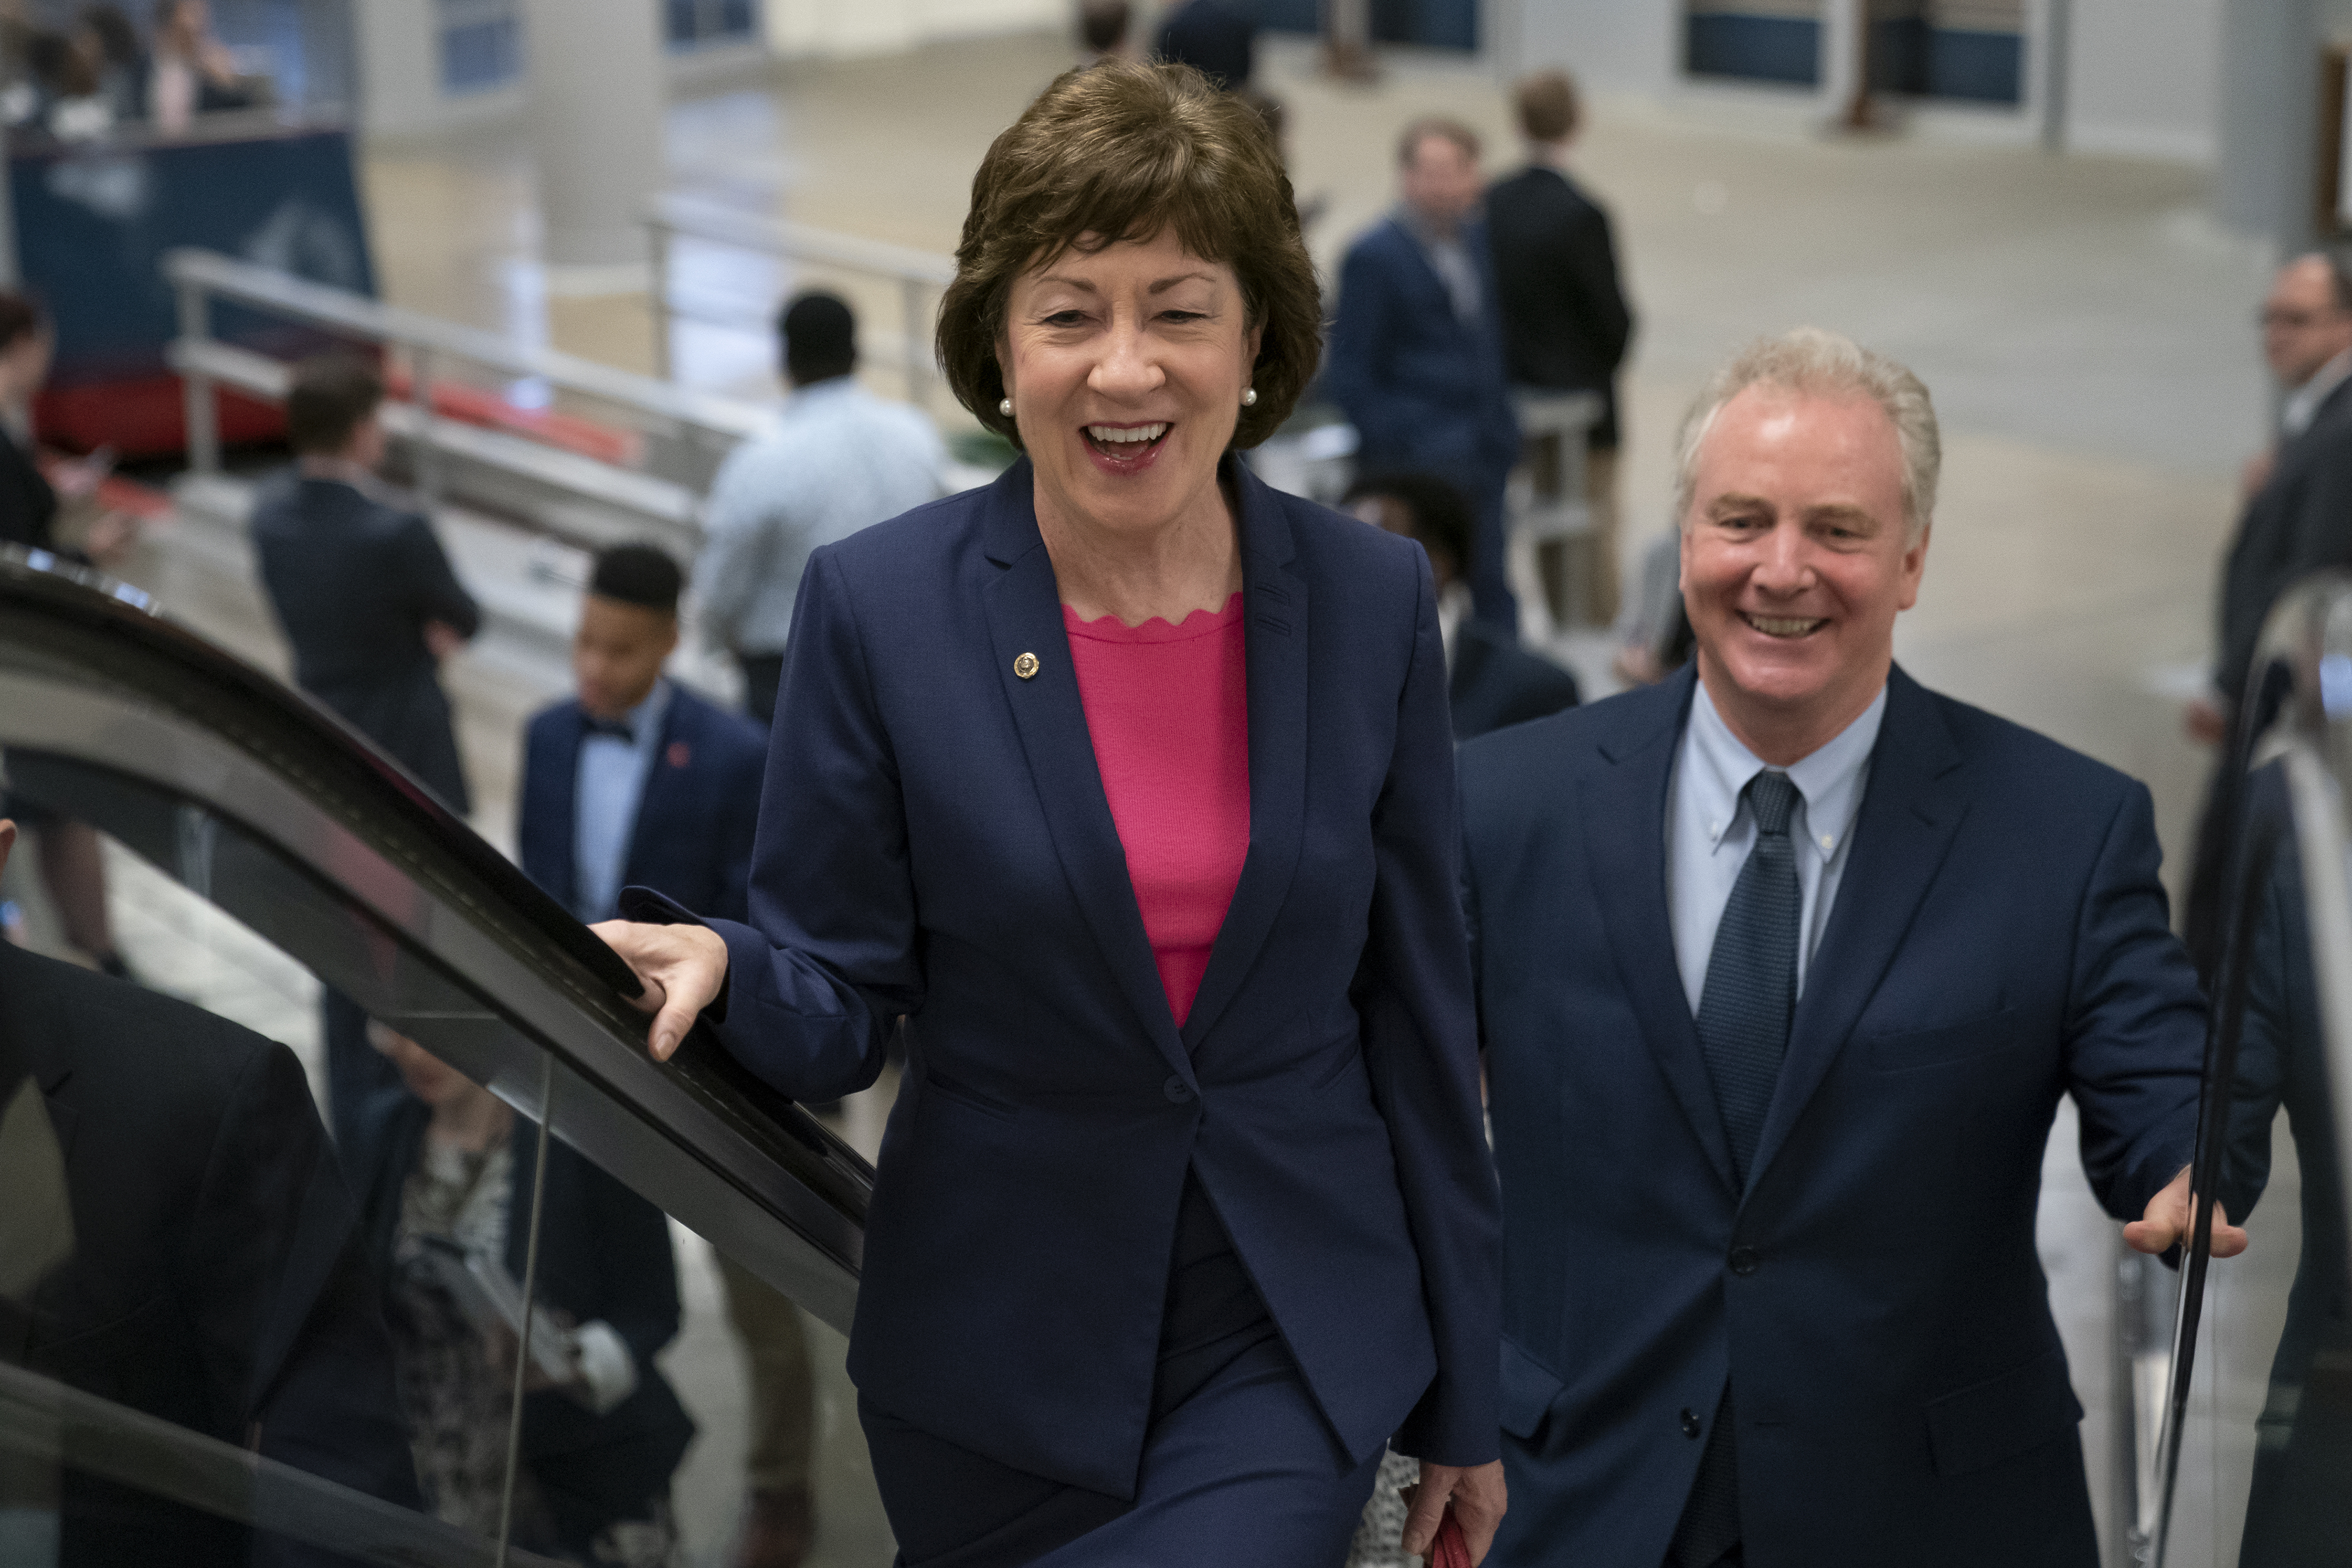 Collins casts 7,000th Senate vote as reelection race looms